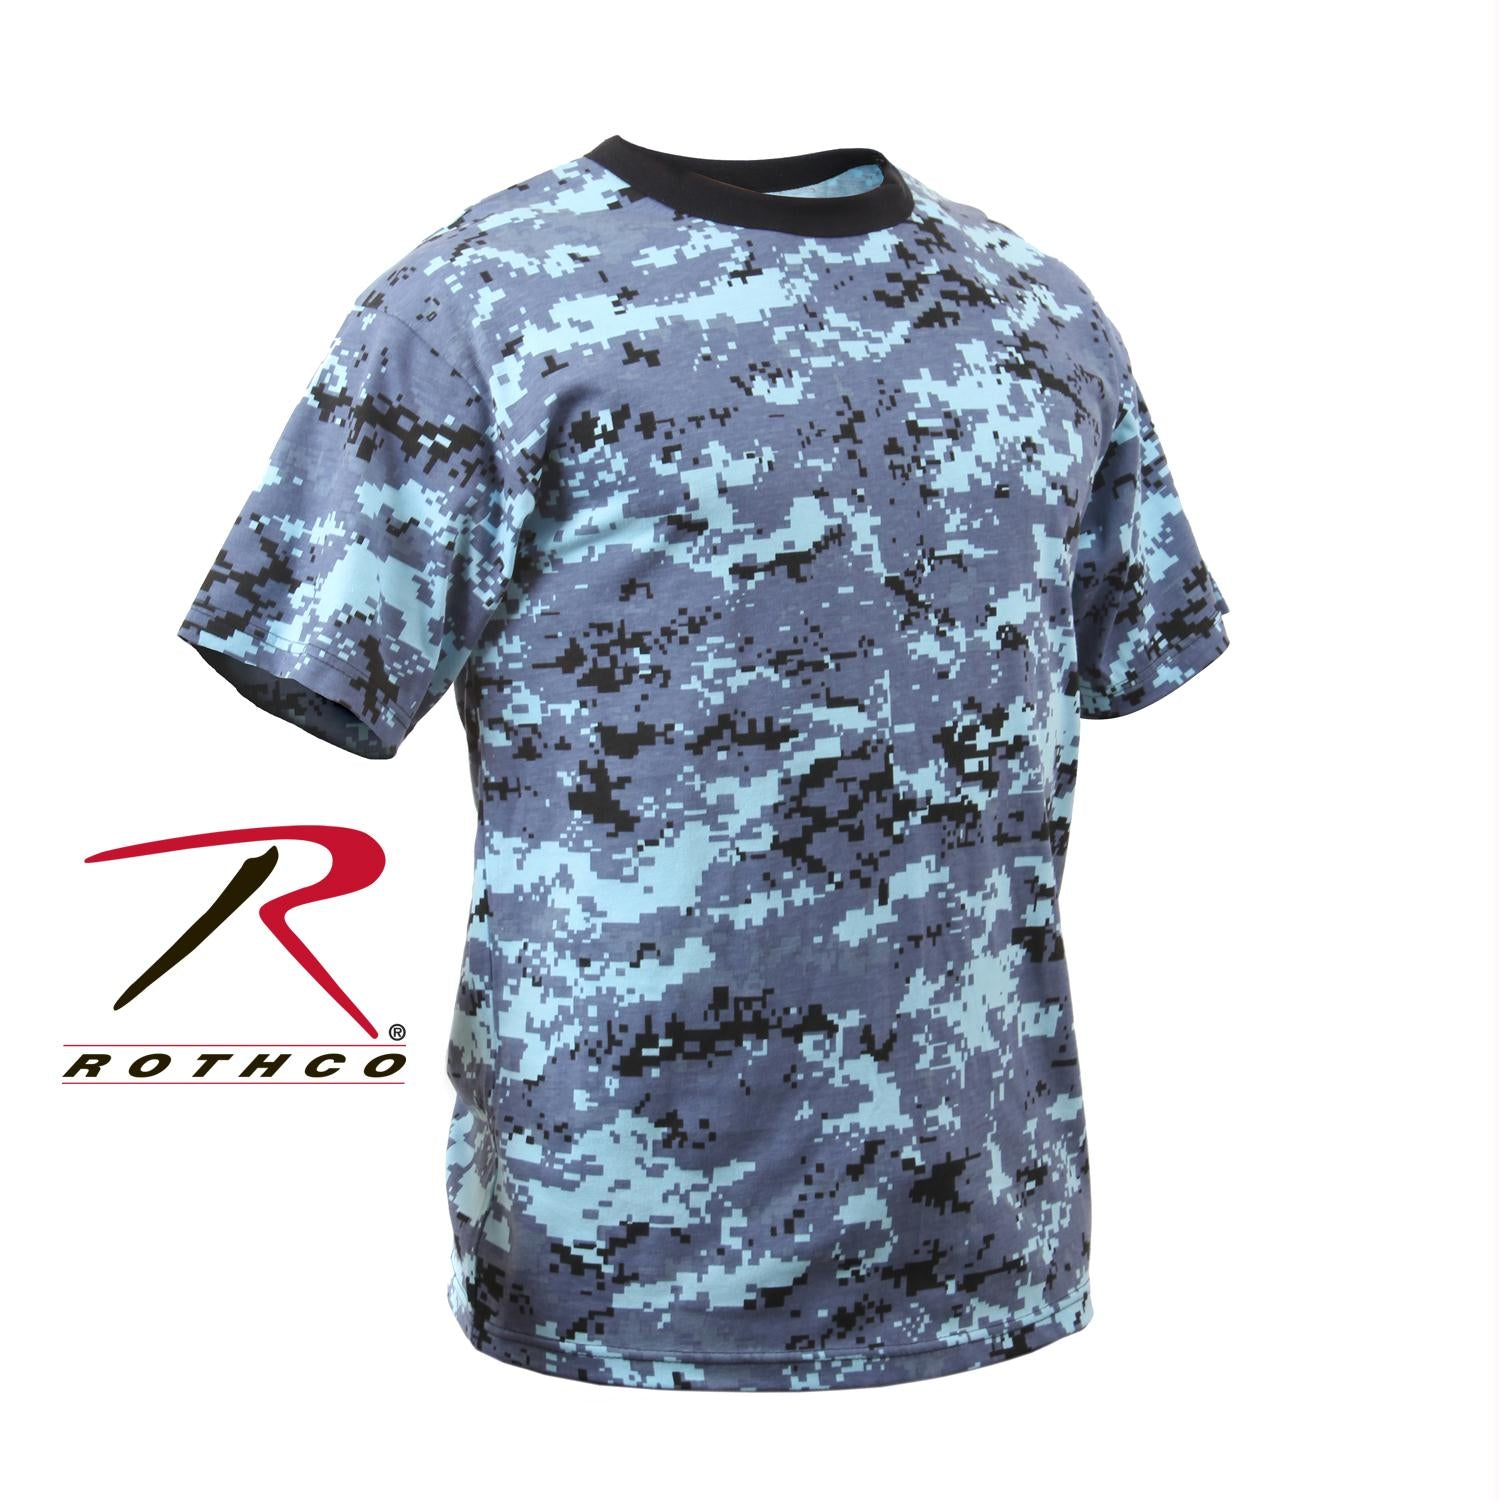 Rothco Kids Digital Camo T-Shirt - Sky Blue Digital Camo / S